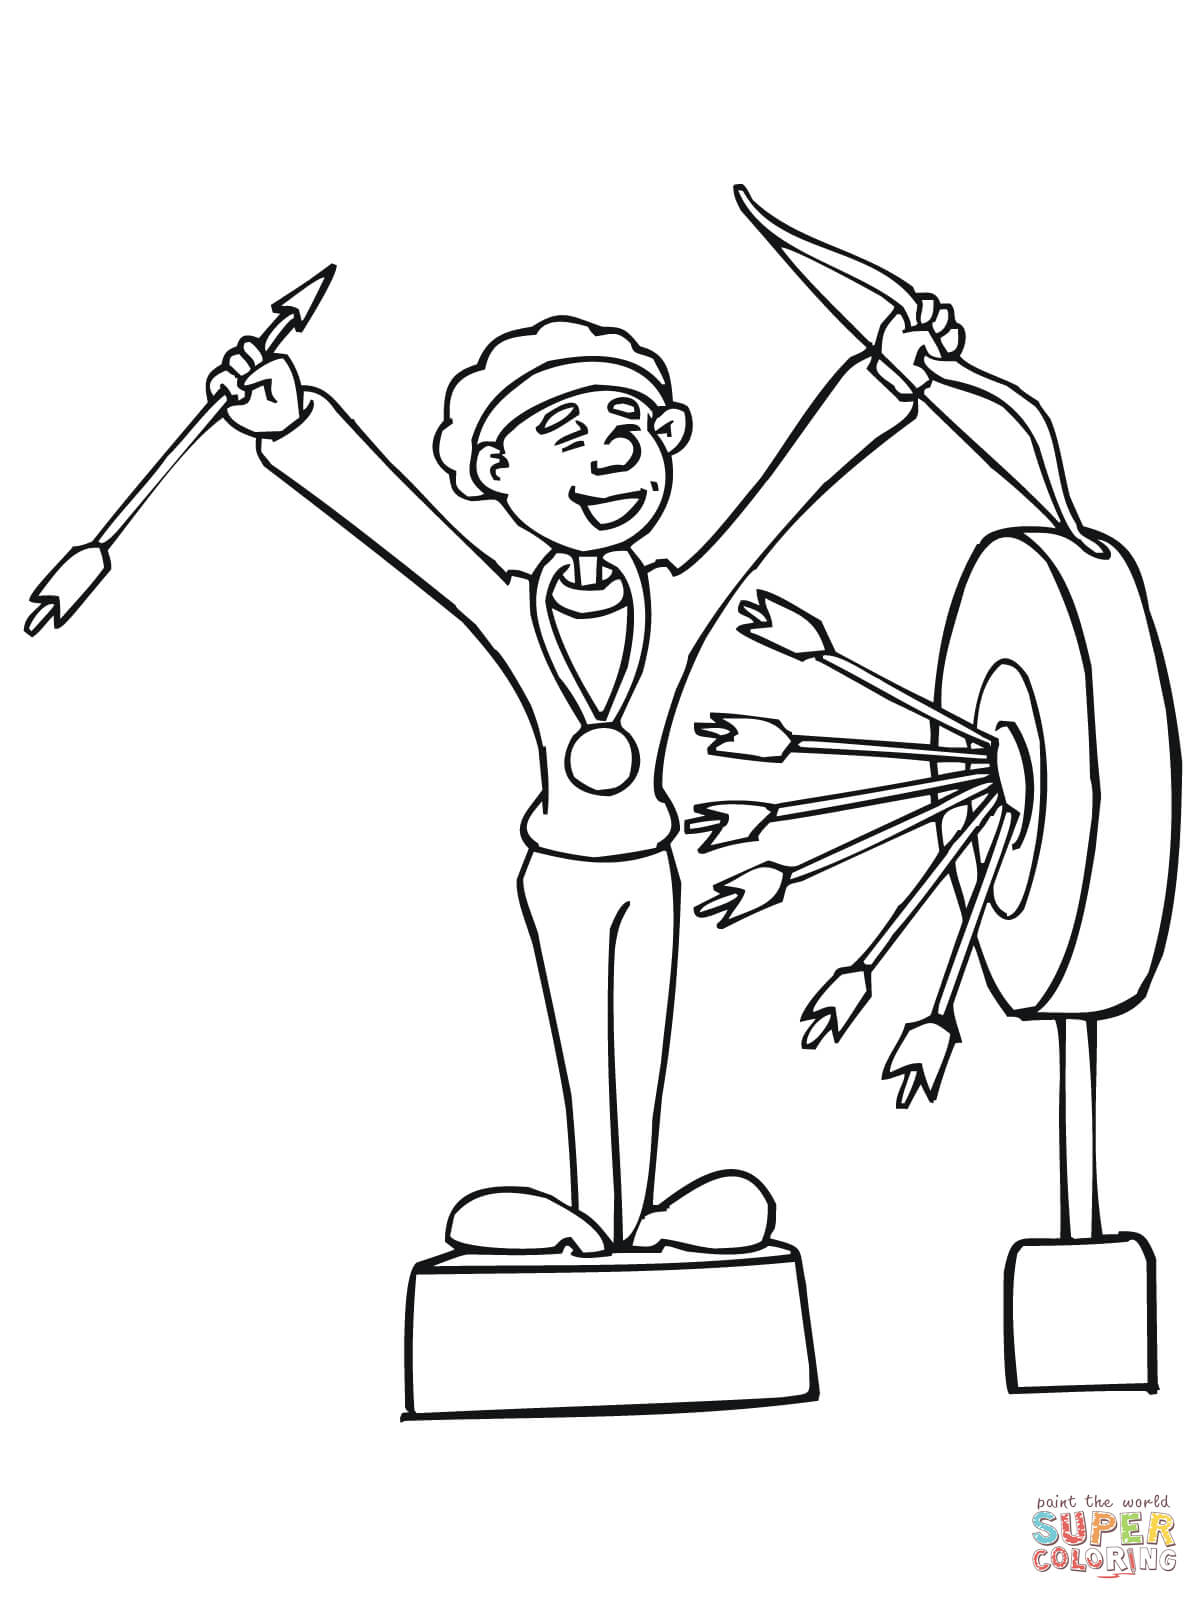 Archery Competition Winner Coloring Page